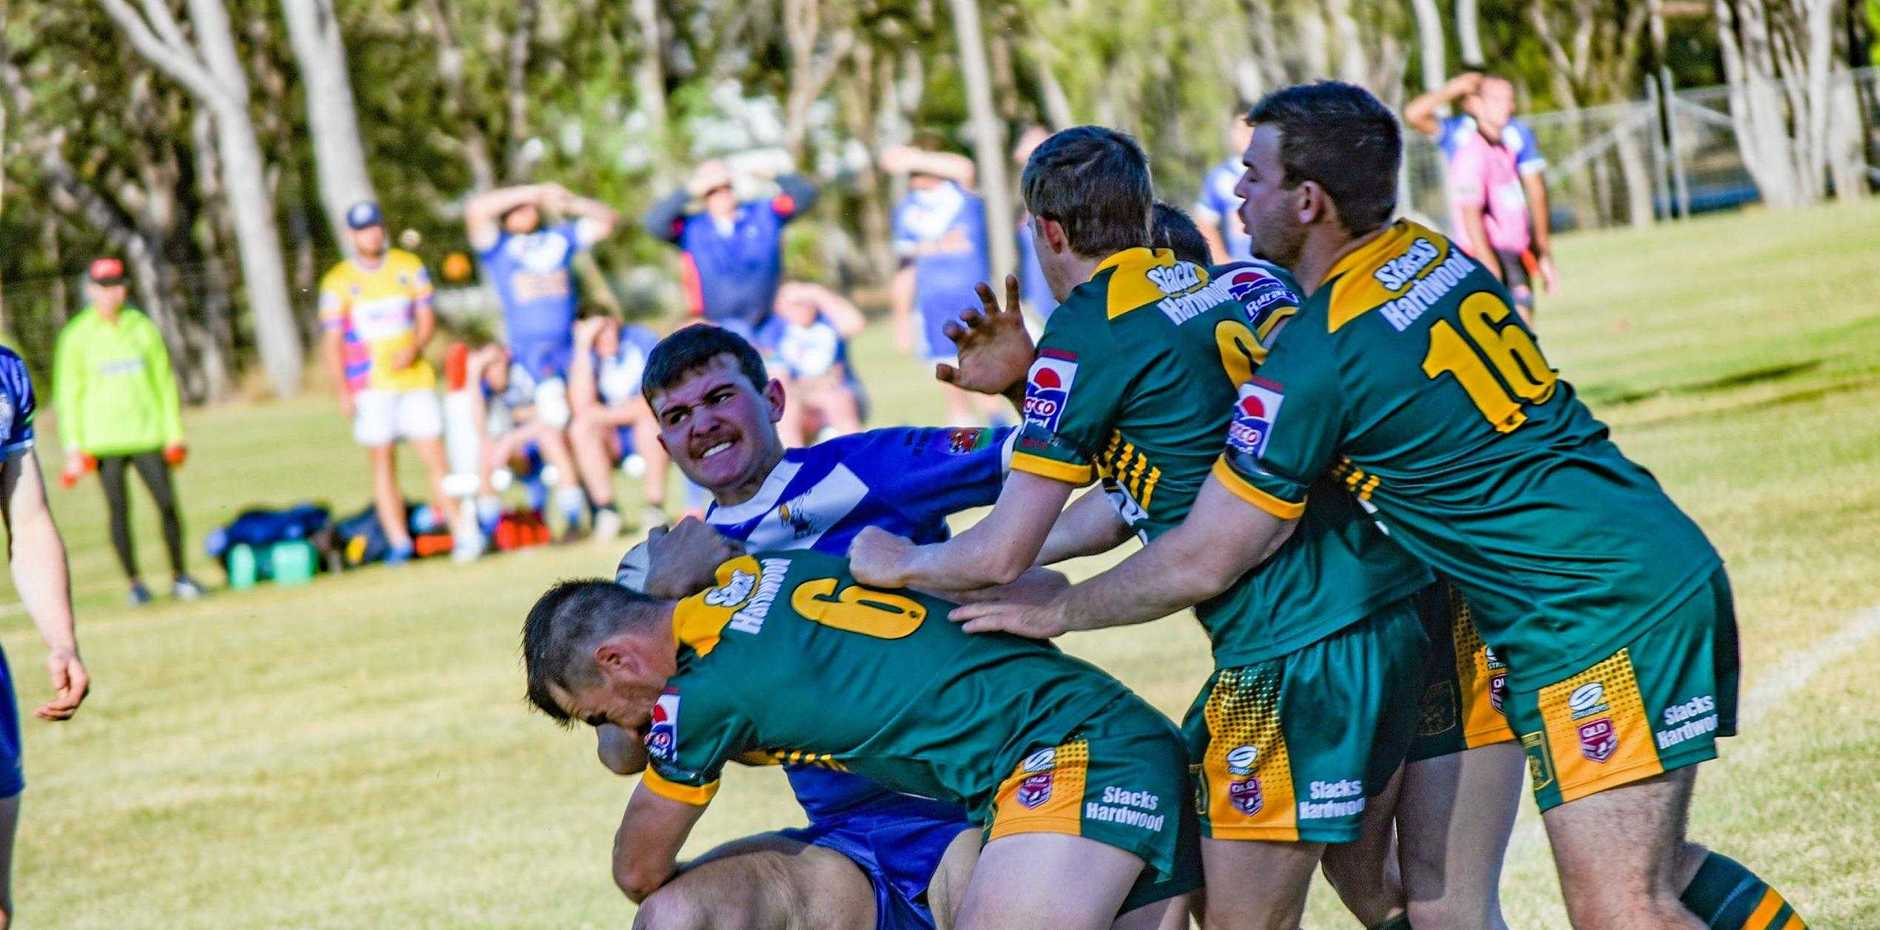 HARD FOUGHT: Gayndah Gladiators vs Monto Roos, CBRL semi final on August 11.